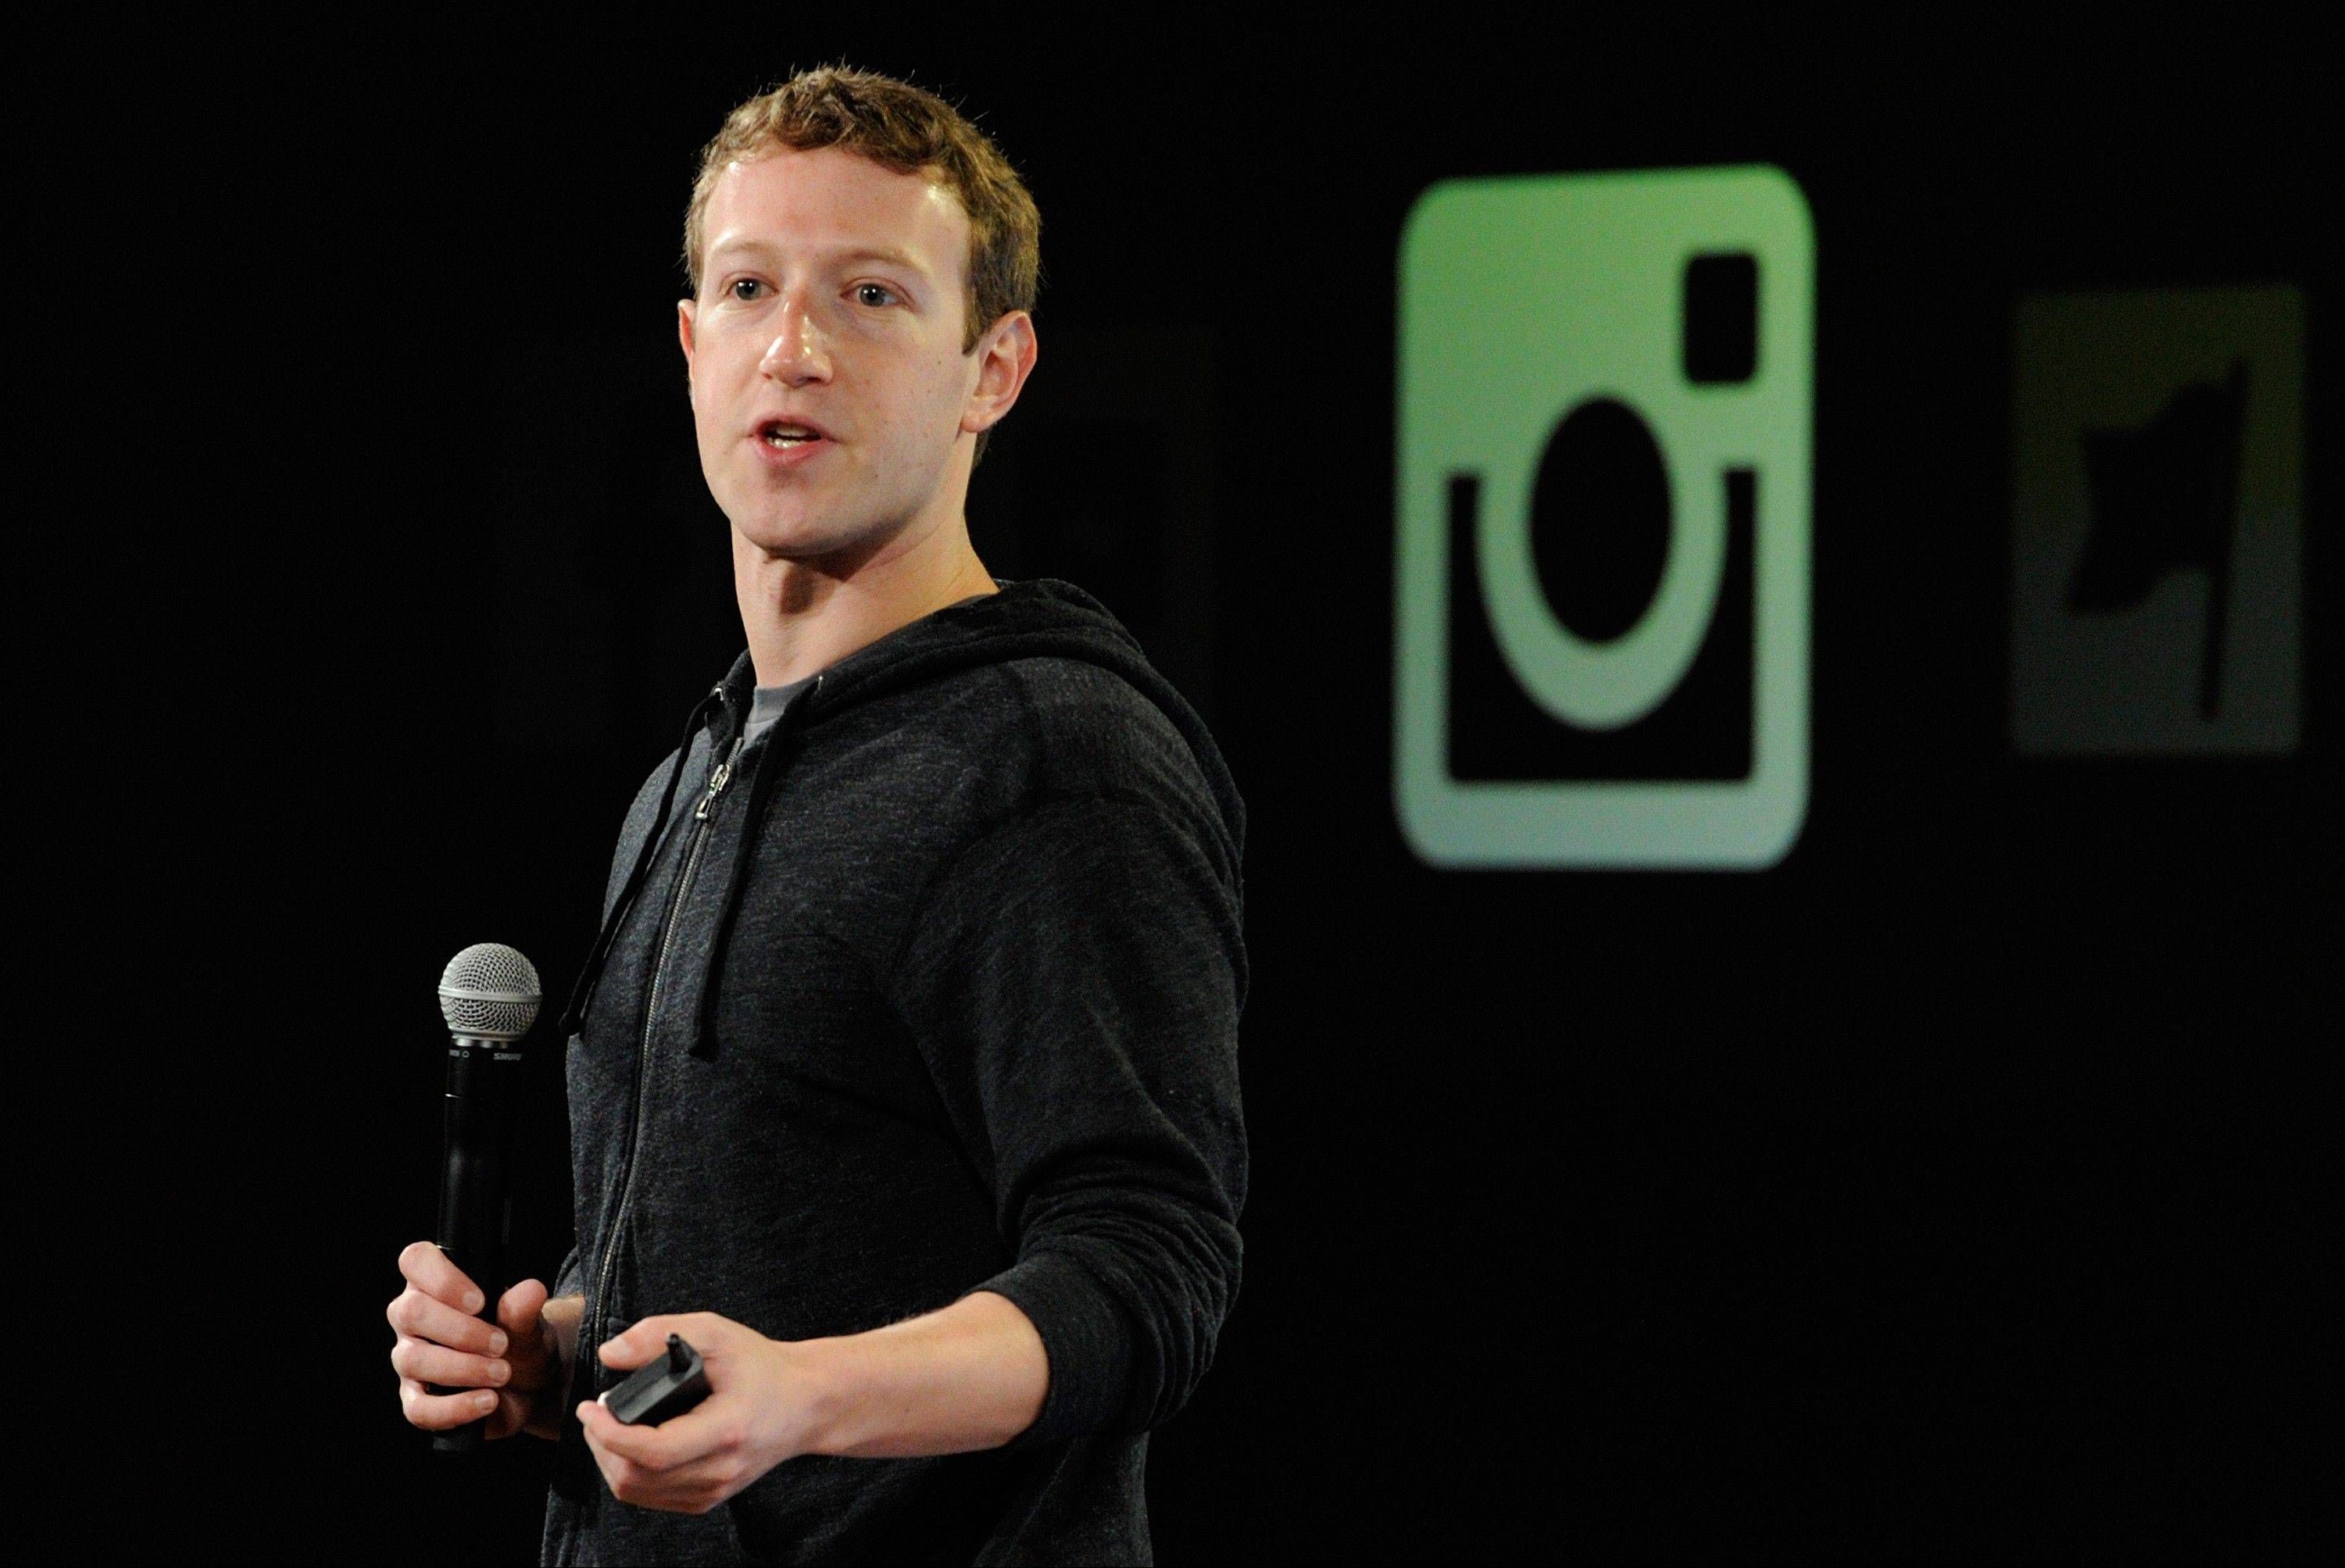 "The U.S. government ""really blew it"" on conducting surveillance programs that riled foreign leaders and domestic skeptics, Facebook Inc. Chief Executive Officer Mark Zuckerberg said in a television interview."